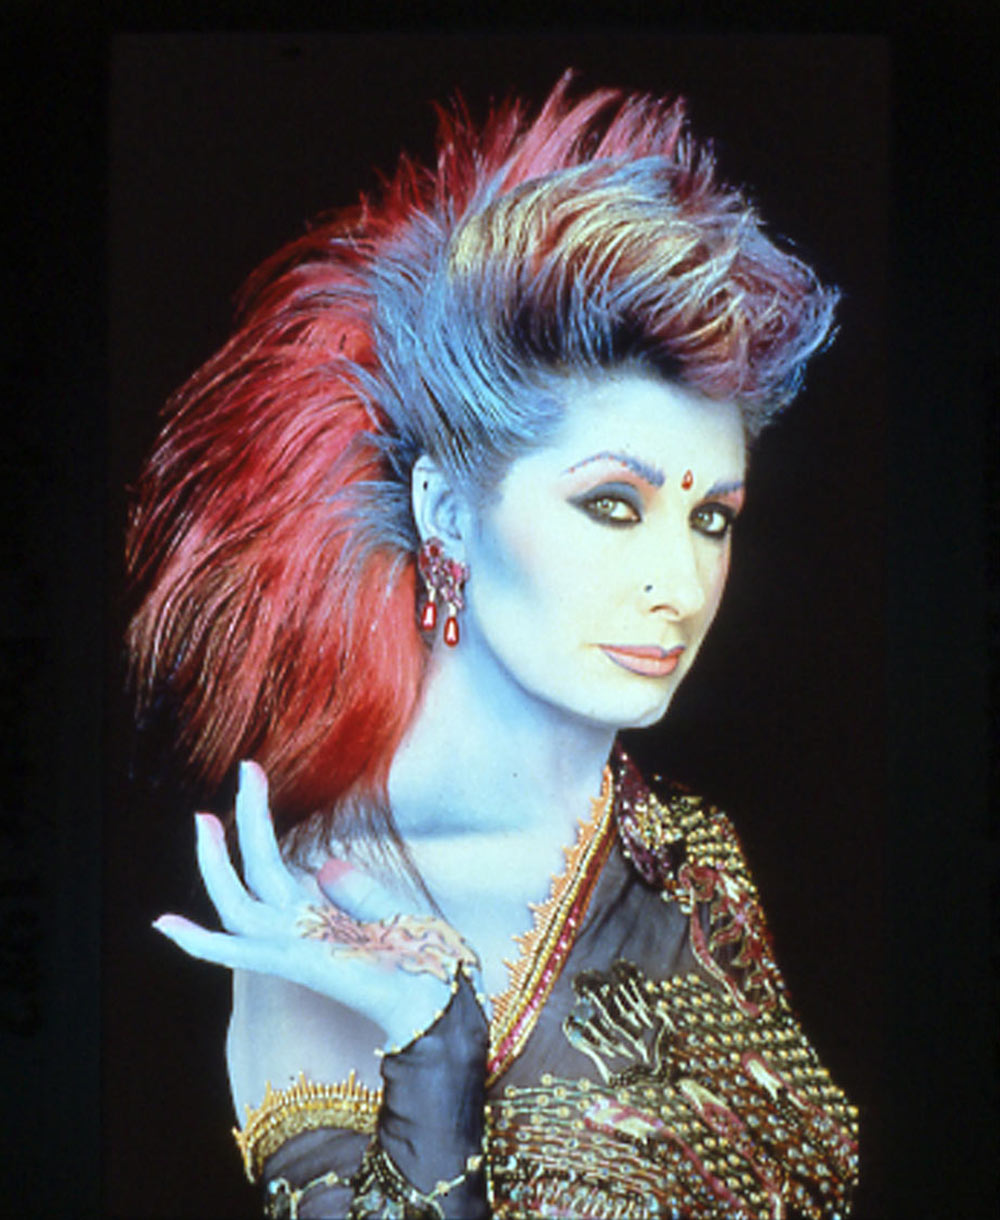 Photograph by Robyn Beeche, Pink Mane Portrait 1982. Makeup and Hair by: Yvonne Gold